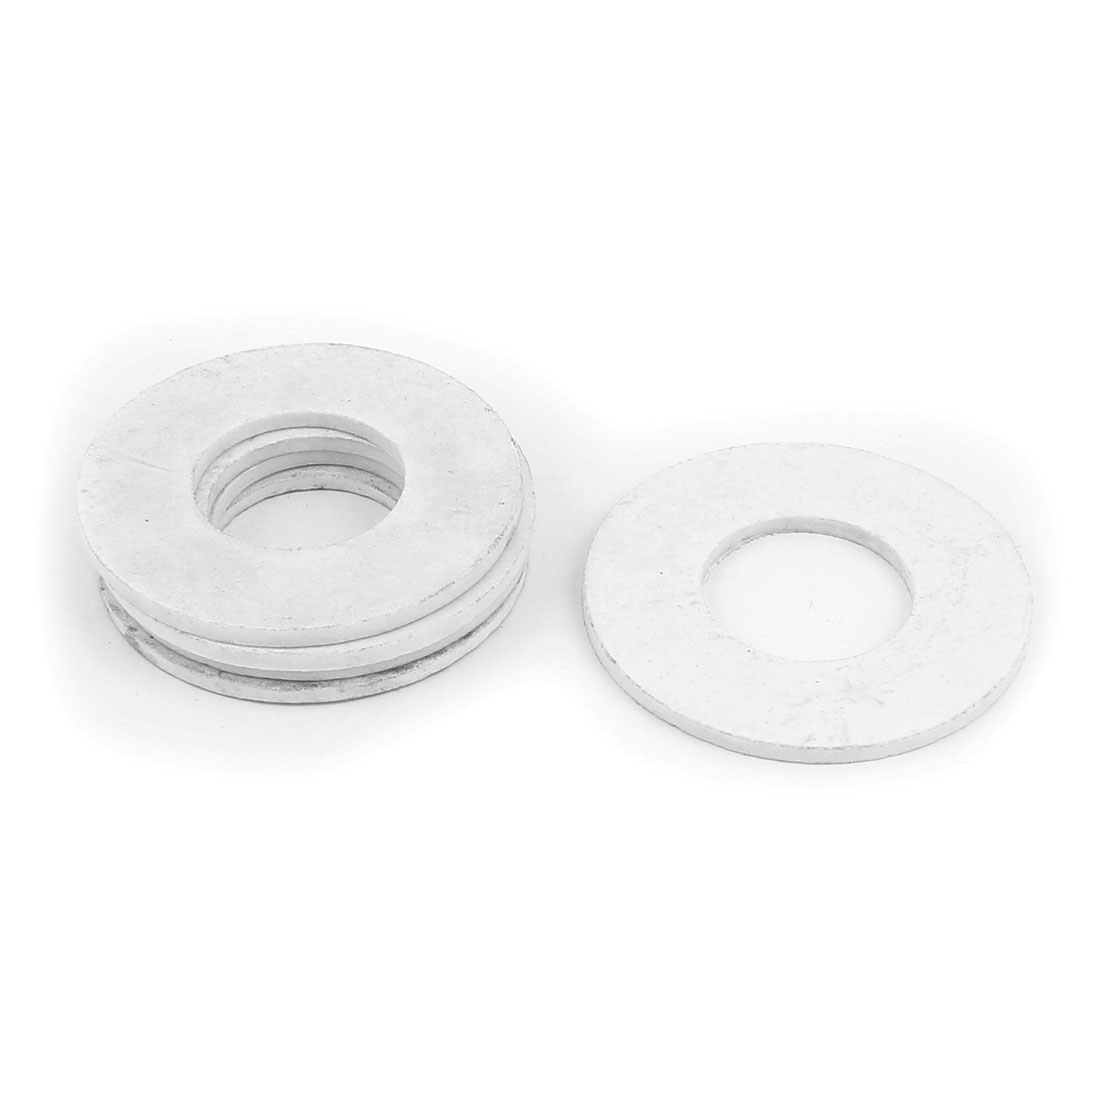 DN25 68x32x3mm PTFE Flange Gasket Pipe Fitting Ferrules White 5pcs